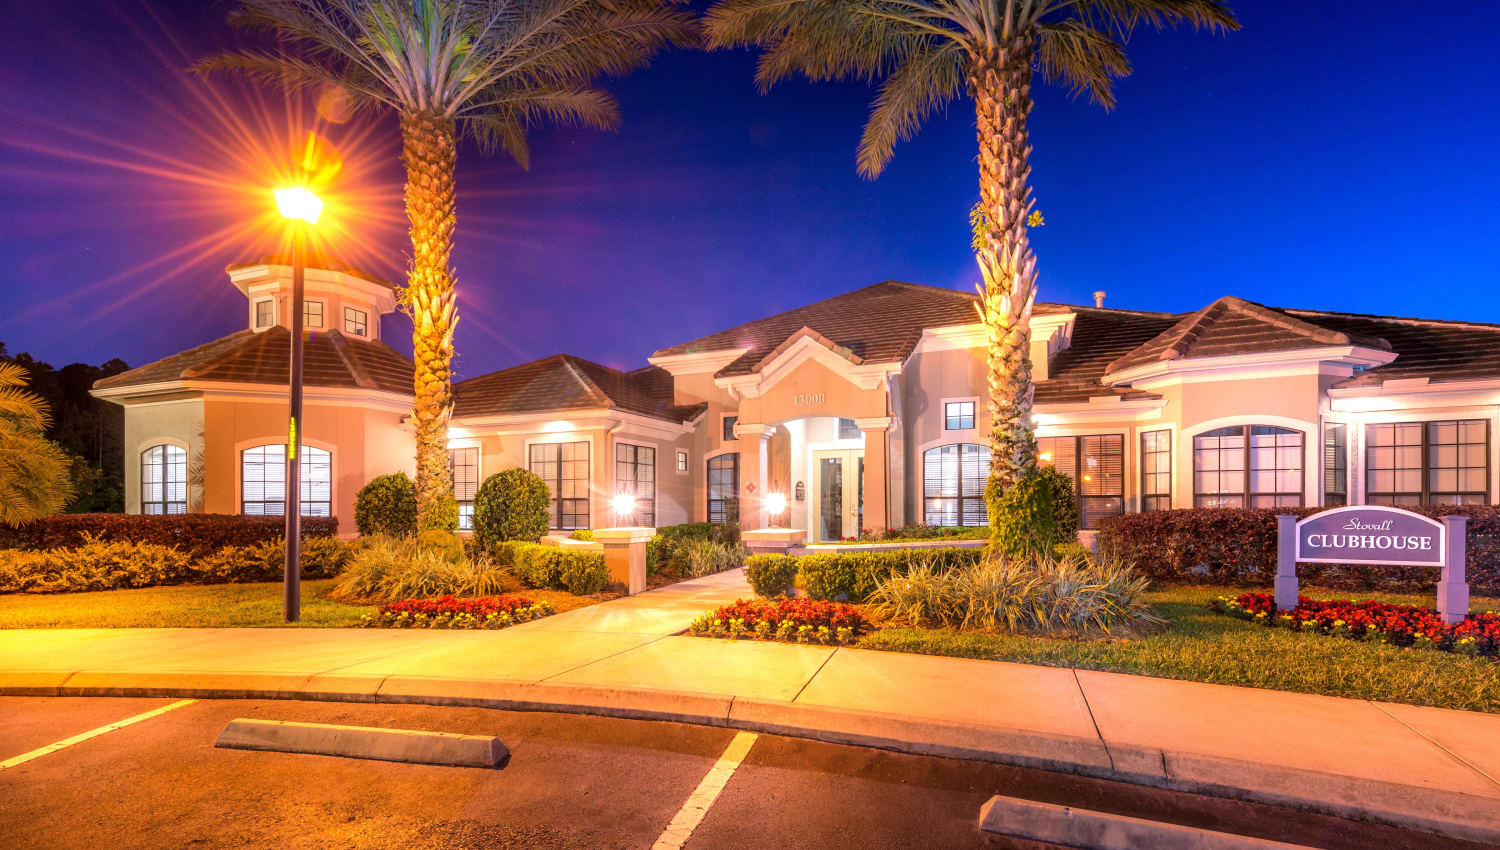 Just before sunrise outside the clubhouse at Mirador & Stovall at River City in Jacksonville, Florida